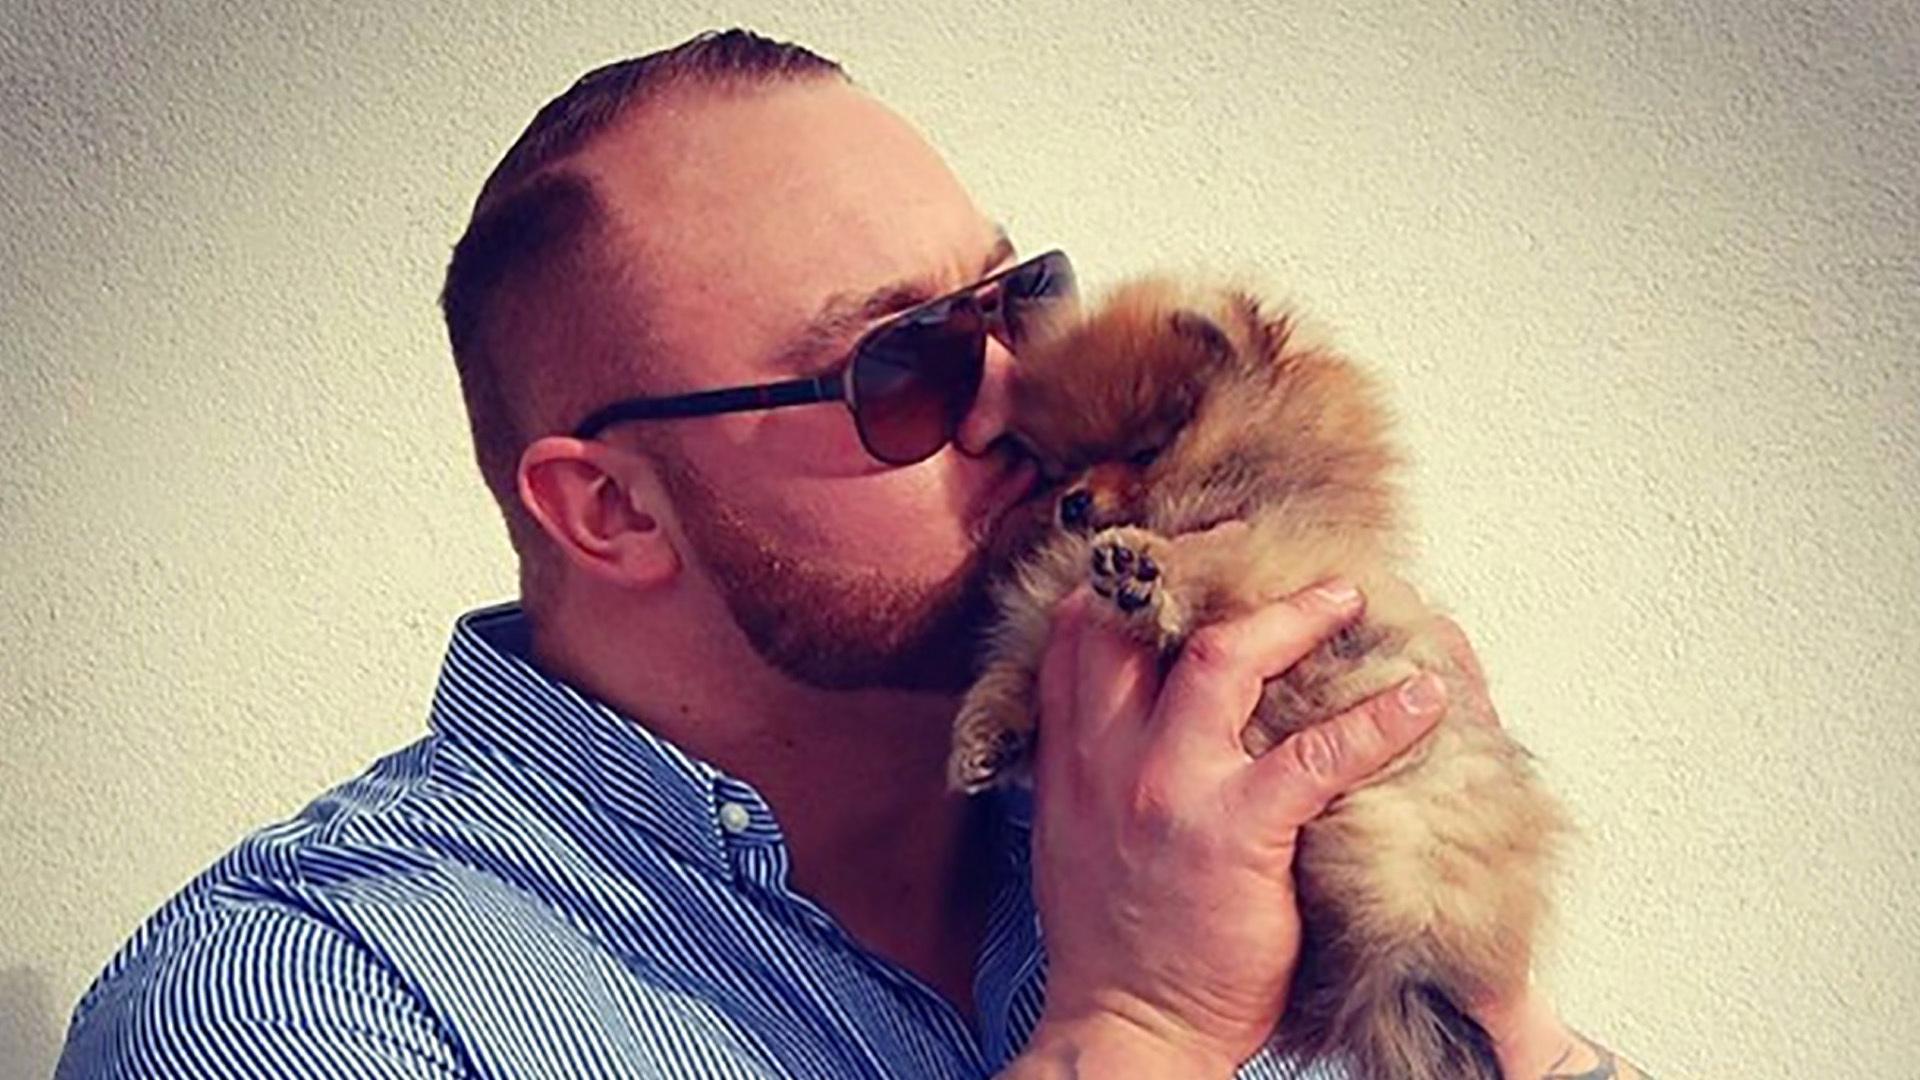 The Mountain From 'Game of Thrones' Has A Tiny Puppy